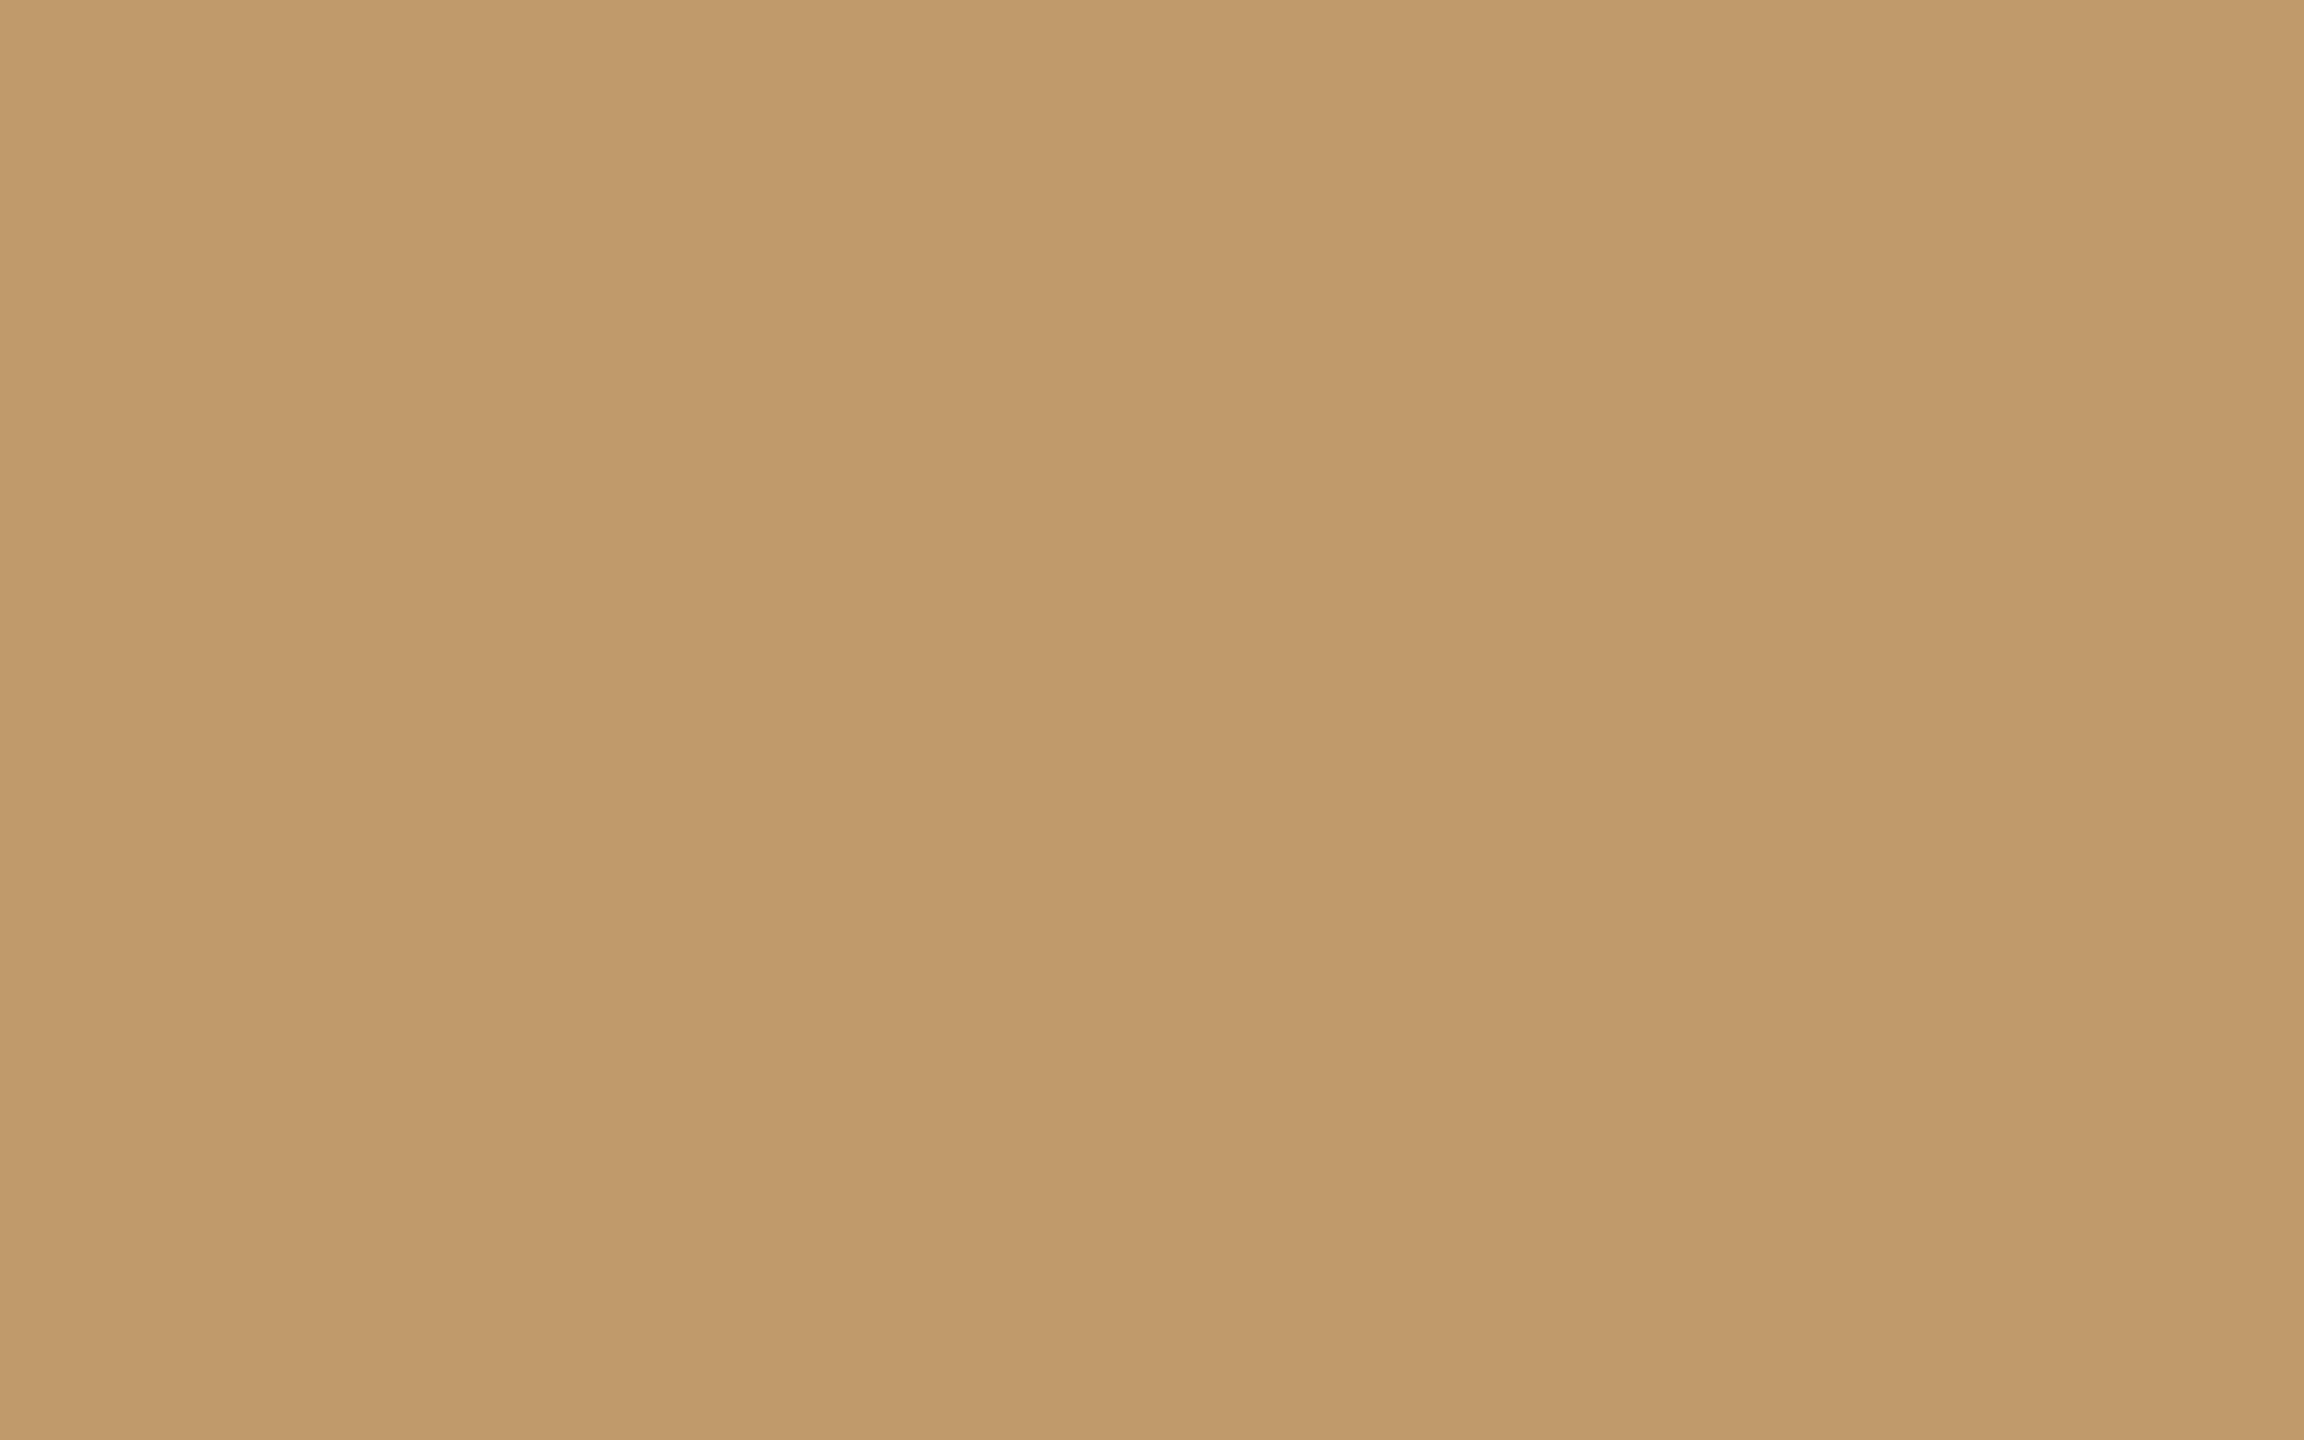 2304x1440 Desert Solid Color Background